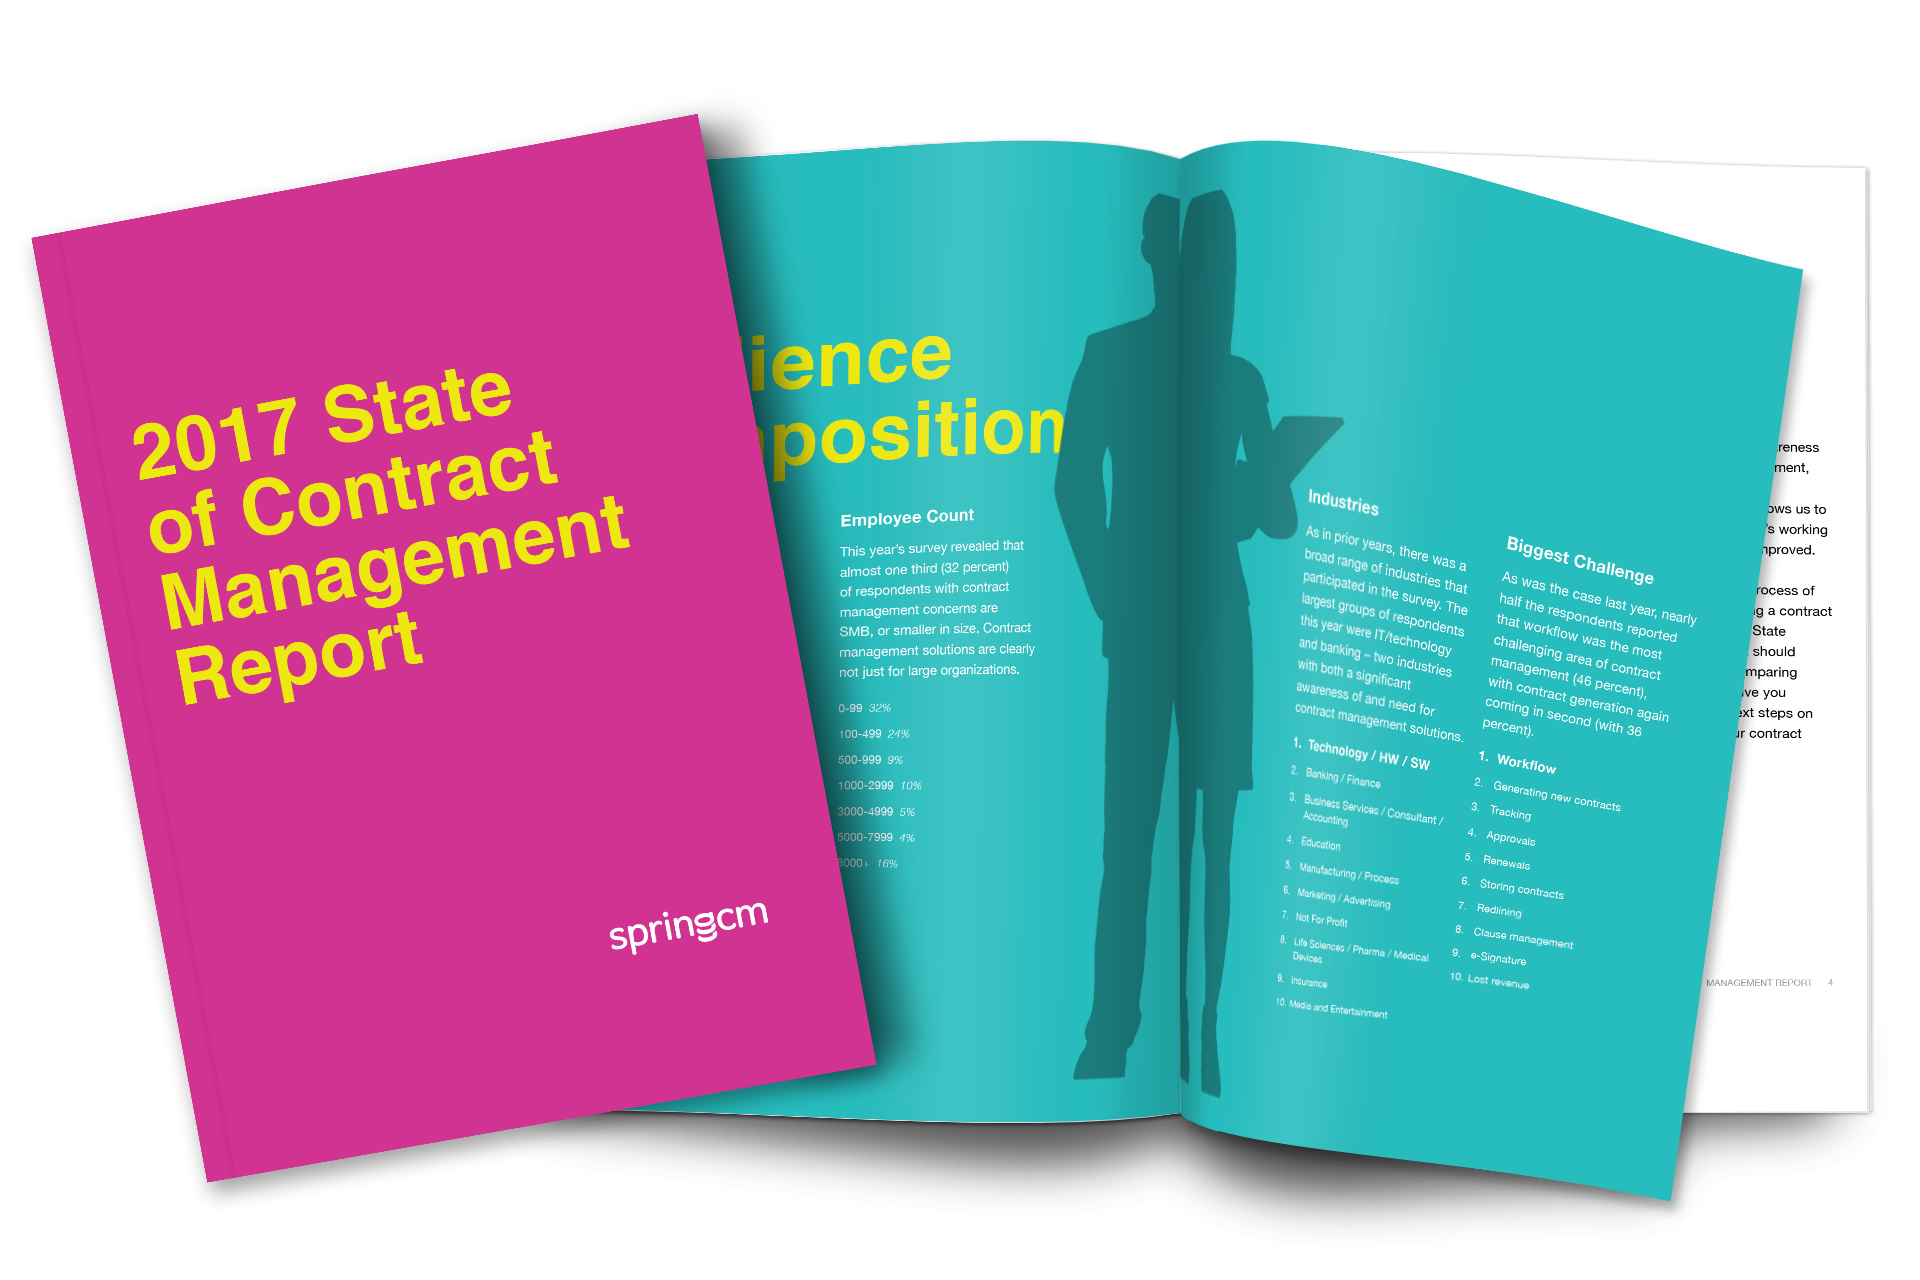 2017 State of Contract Management Report